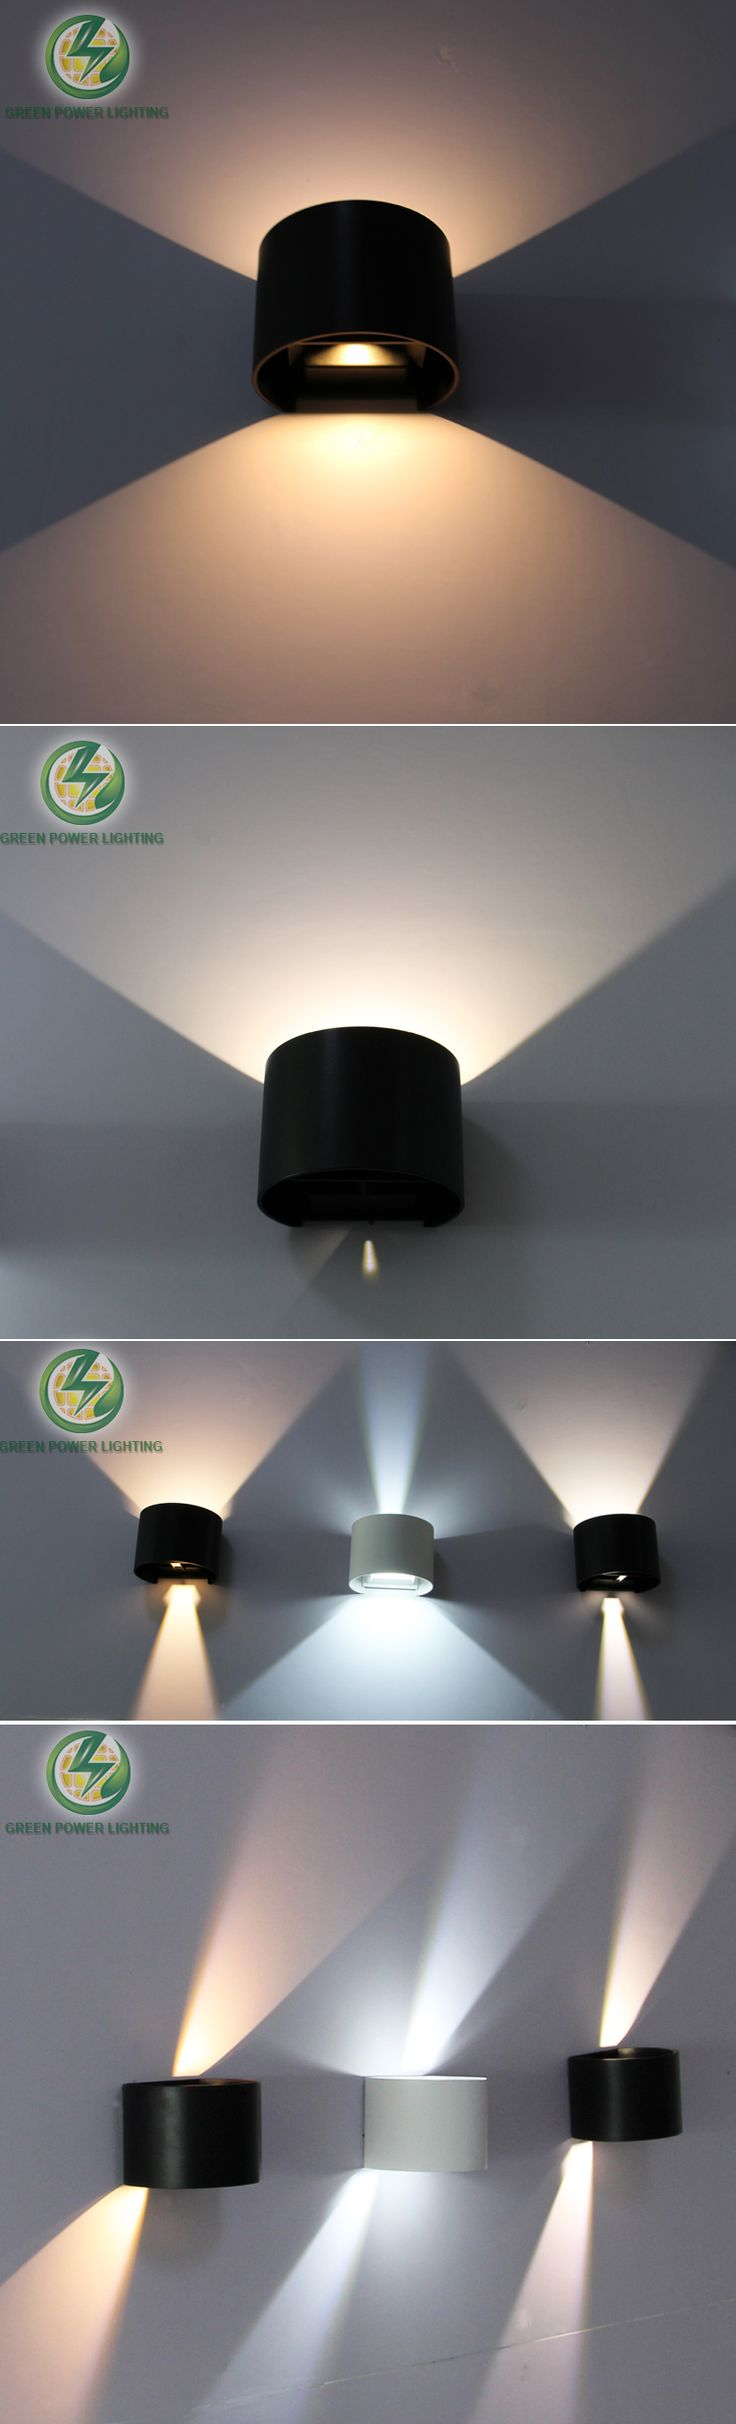 NEW IP65 Round  Shade adjustable surface mounted outdoor cube led  wall light,  Led outdoor wall lamp ,up and down wall light-in Outdoor Wall Lamps from Lights & Lighting on Aliexpress.com | Alibaba Group